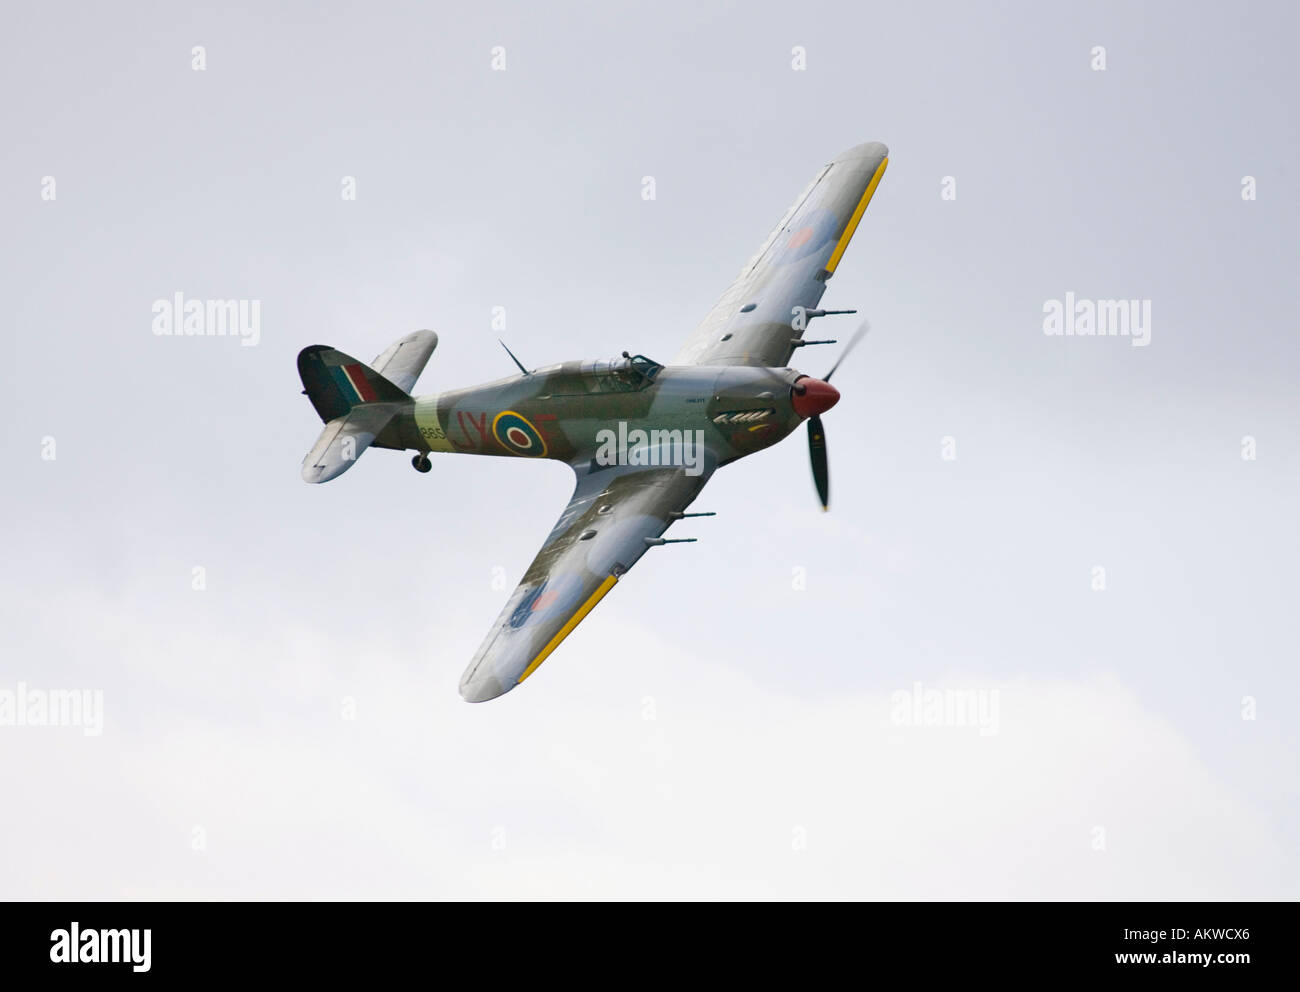 Hawker Hurricane fighter aircraft at Rougham airshow August 2006 in Suffolk, UK - Stock Image